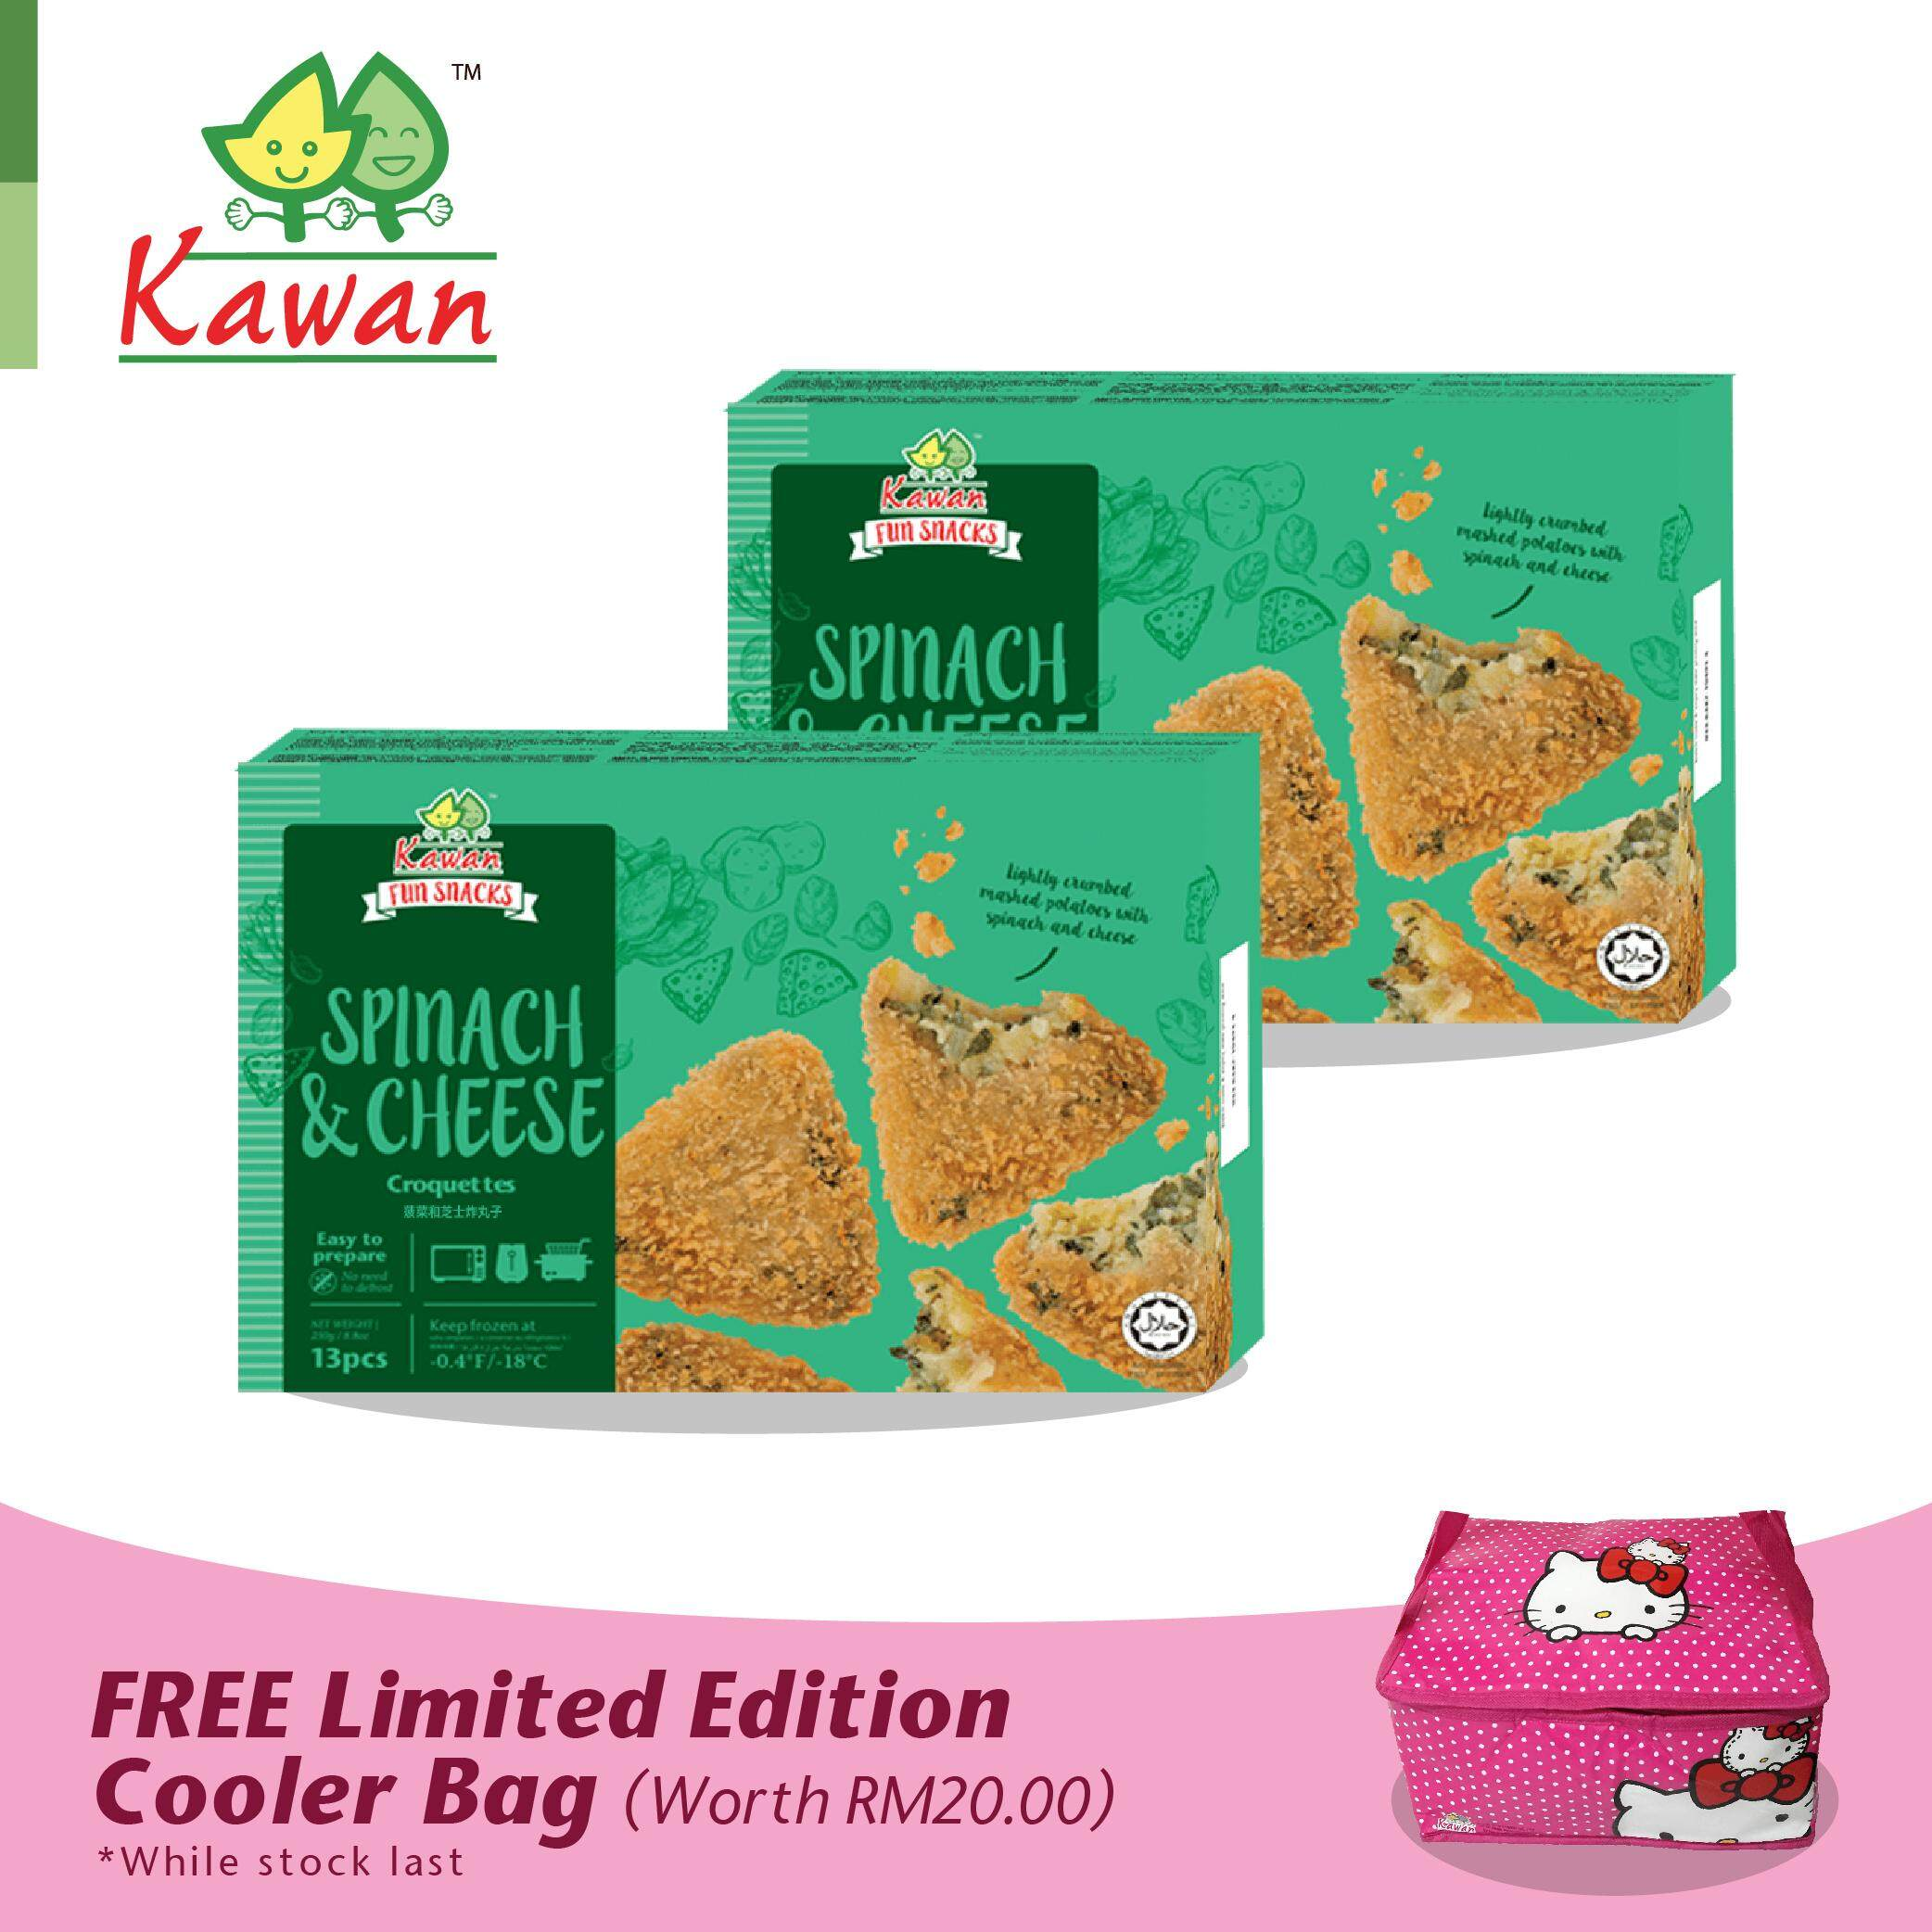 KAWAN Spinach & Cheese Croquette Buy 2 FREE 1 Limited Edition Cooler Bag